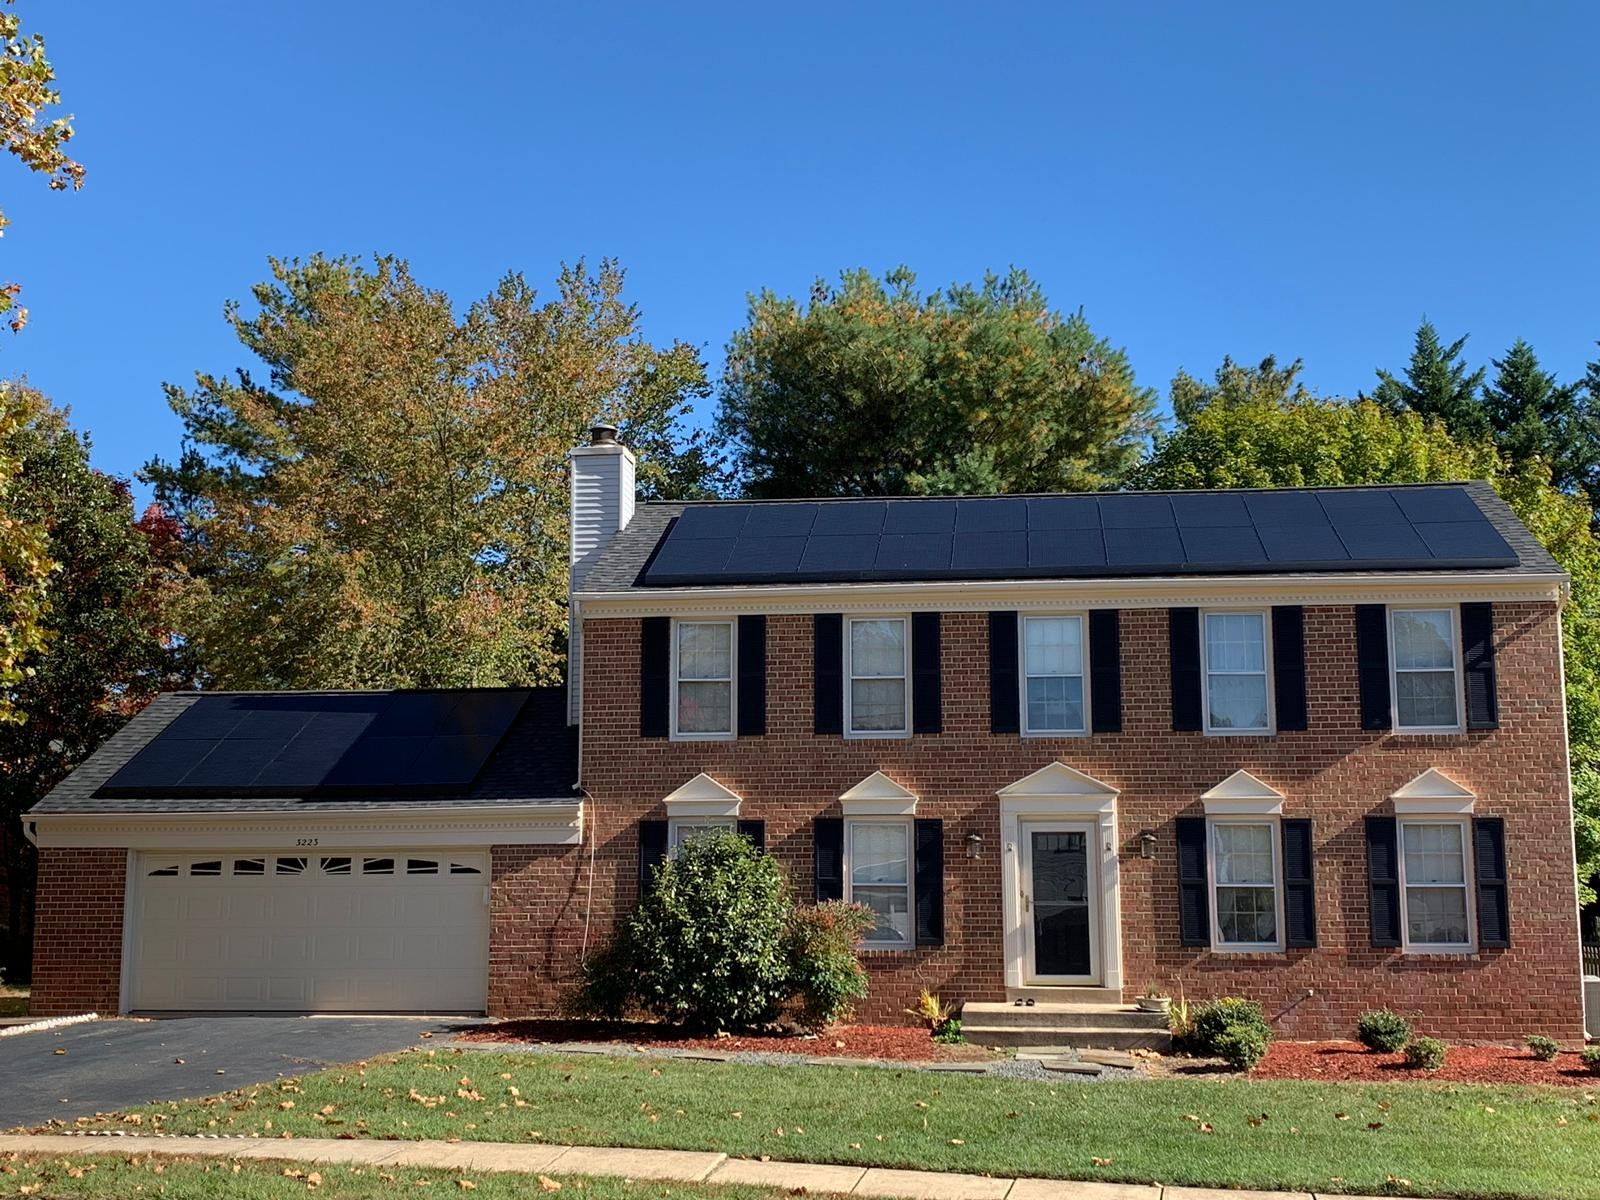 All-black solar modules in Herdon, VA